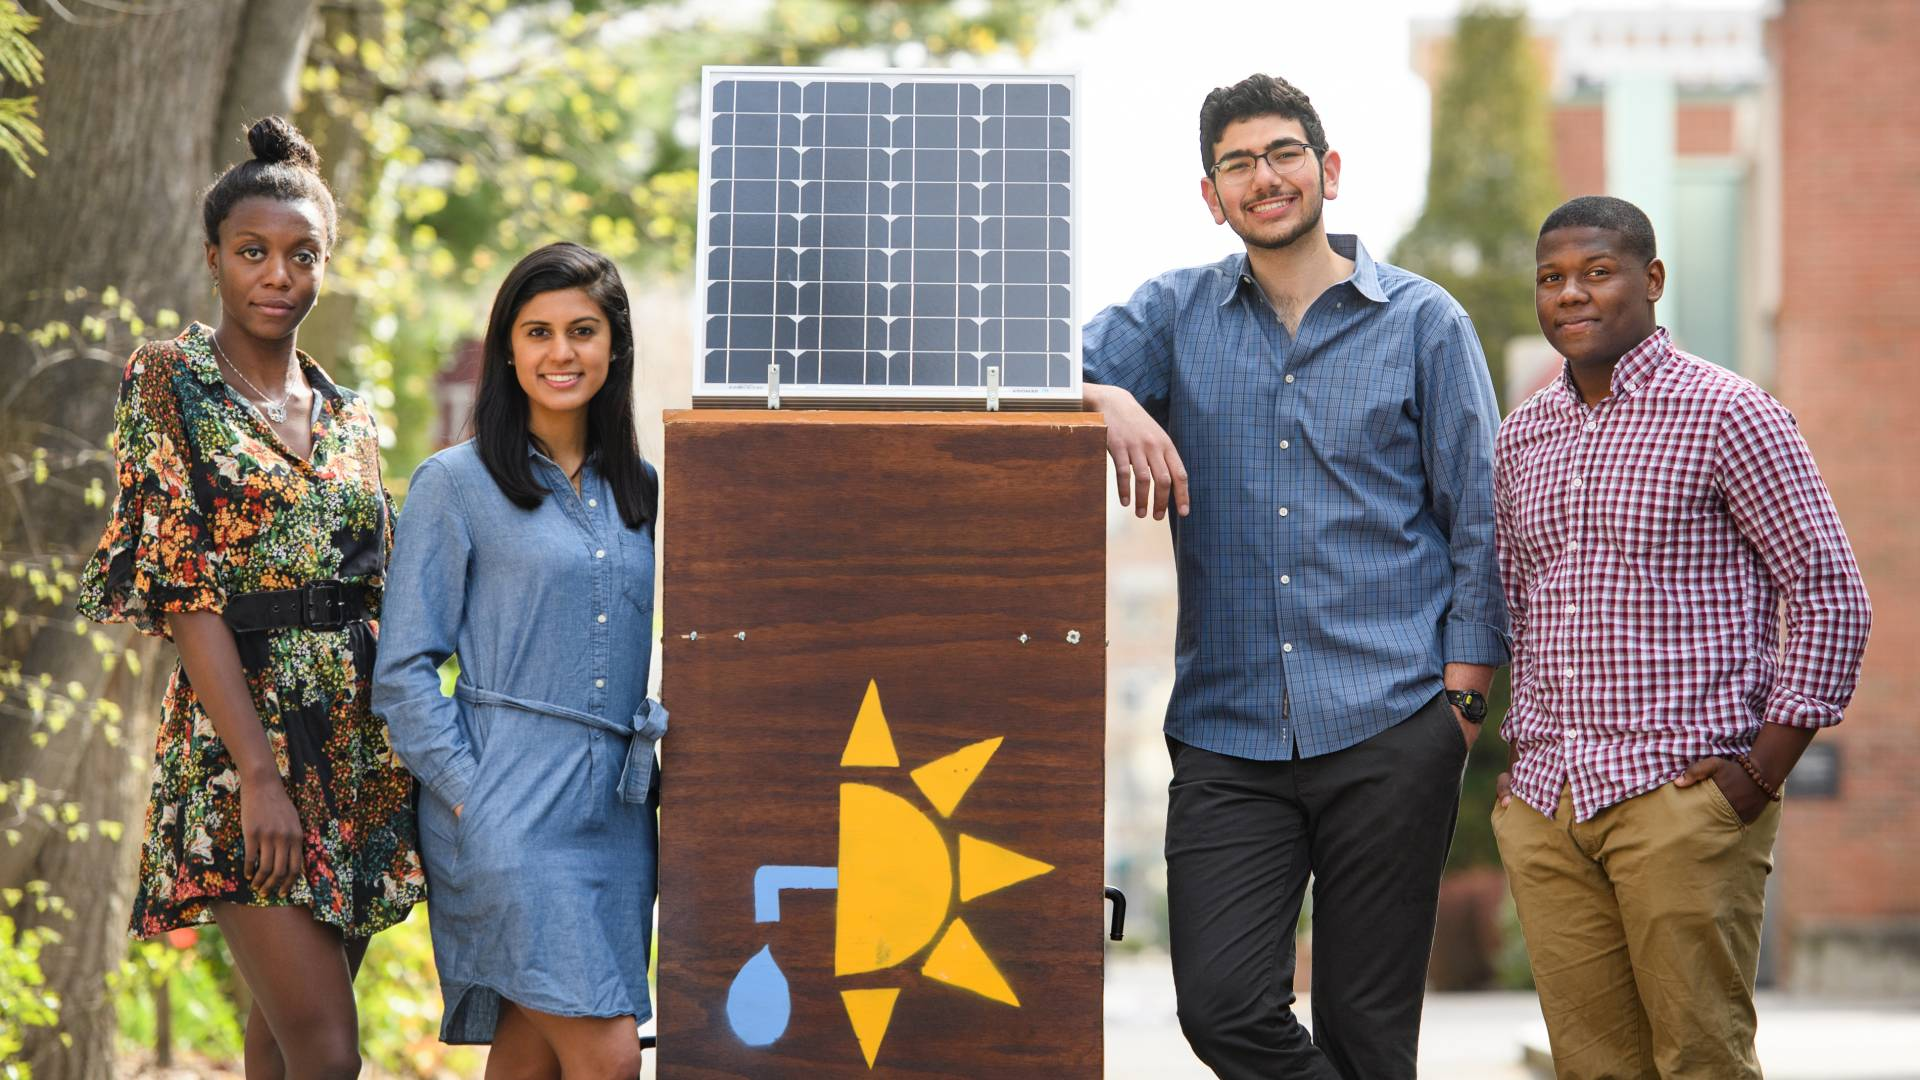 Startup culture meets social good as Princeton students innovate for